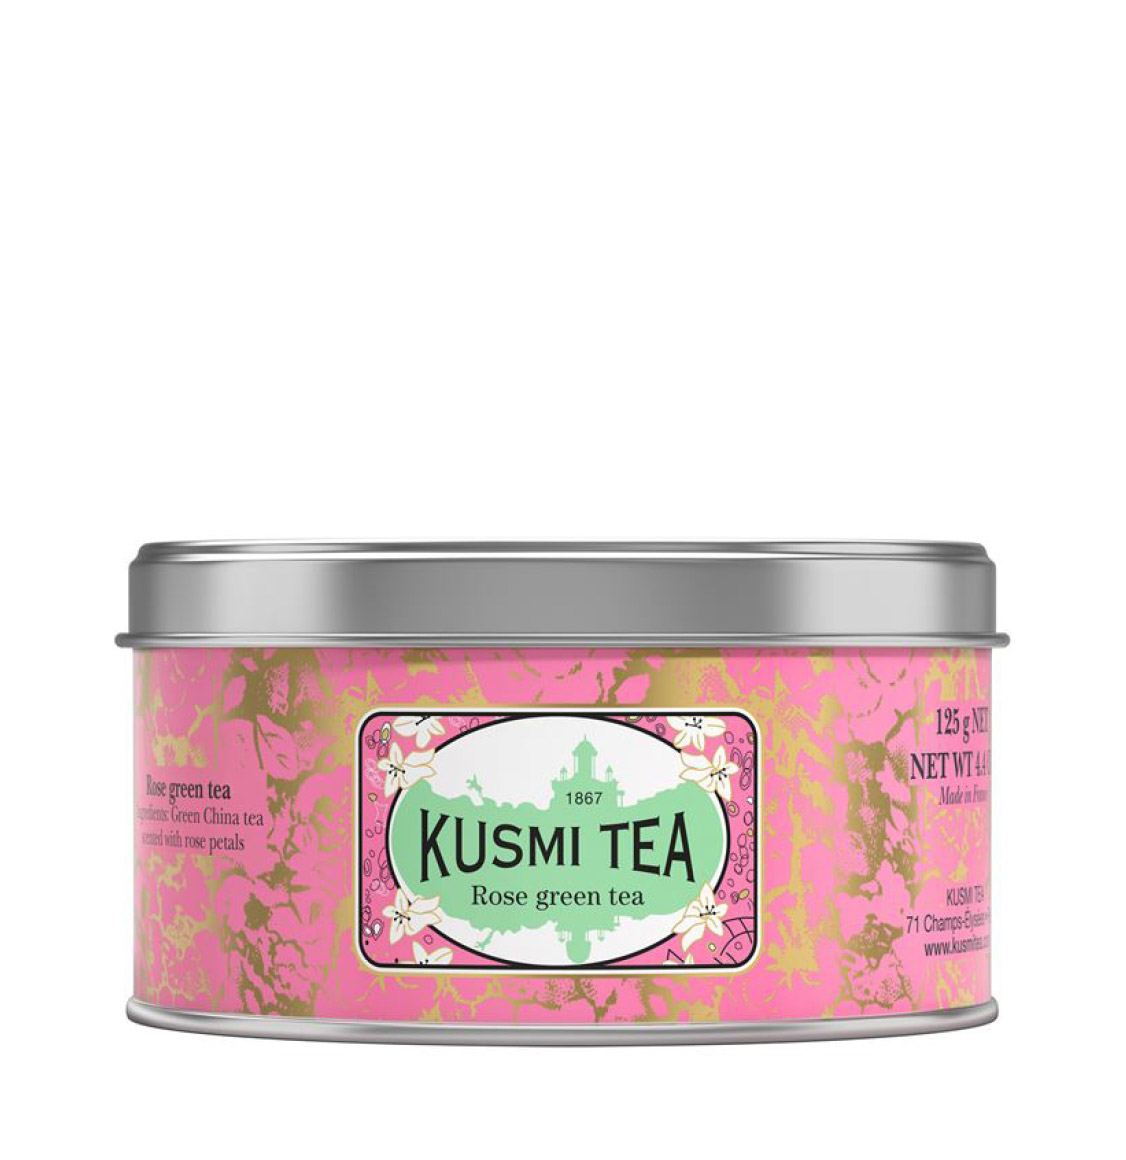 Kusmi Tea Rose Green Tea 125g